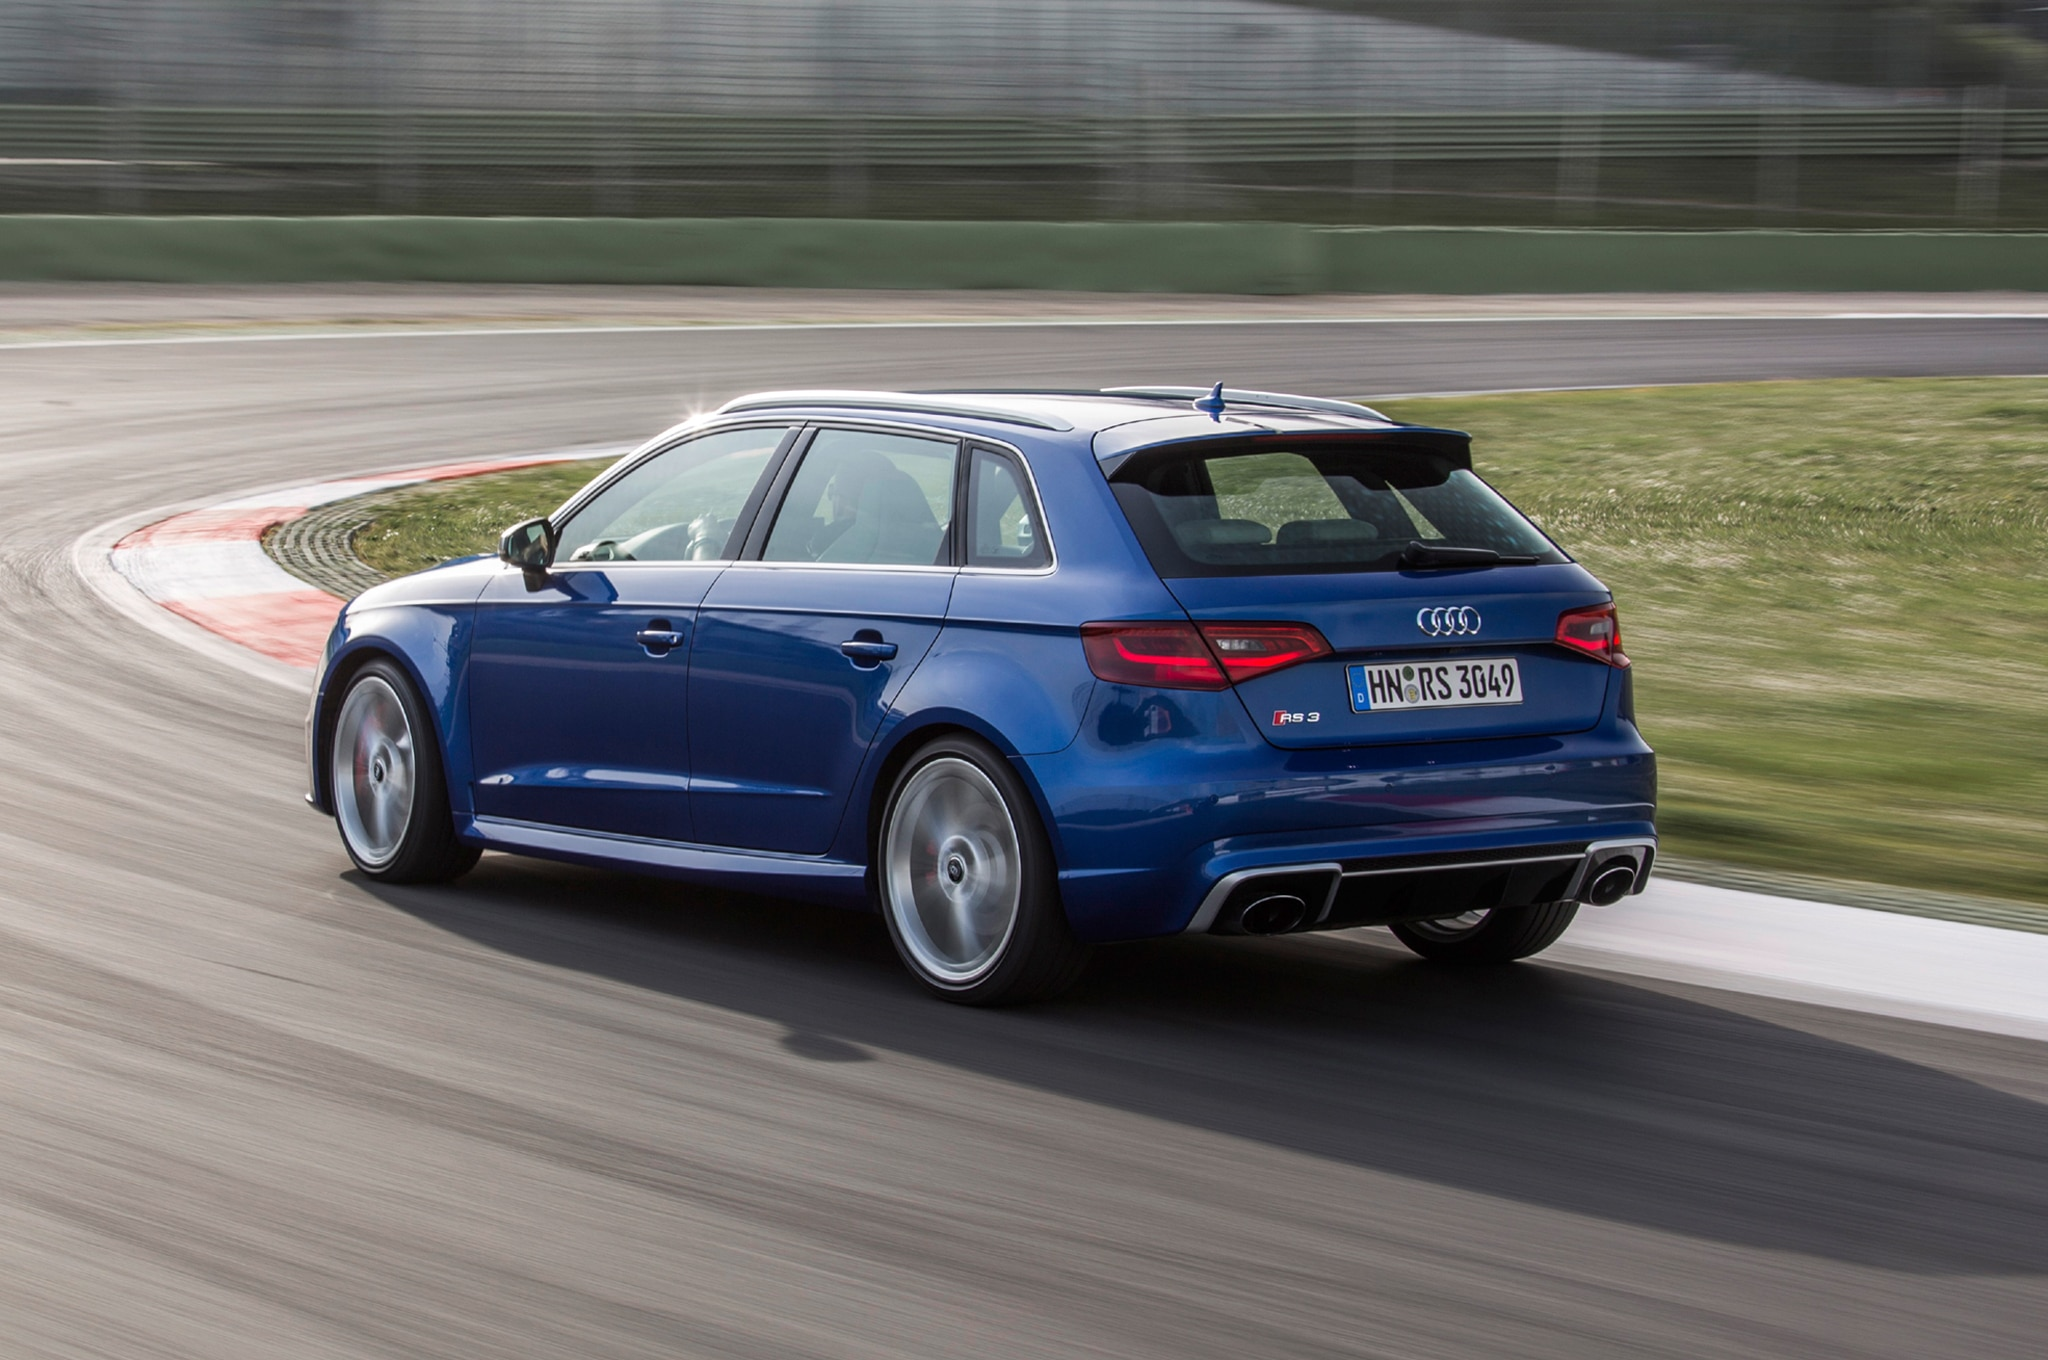 Audi RS3 Coming to U.S. in 2017 with New Five-Cylinder Turbo Engine ...